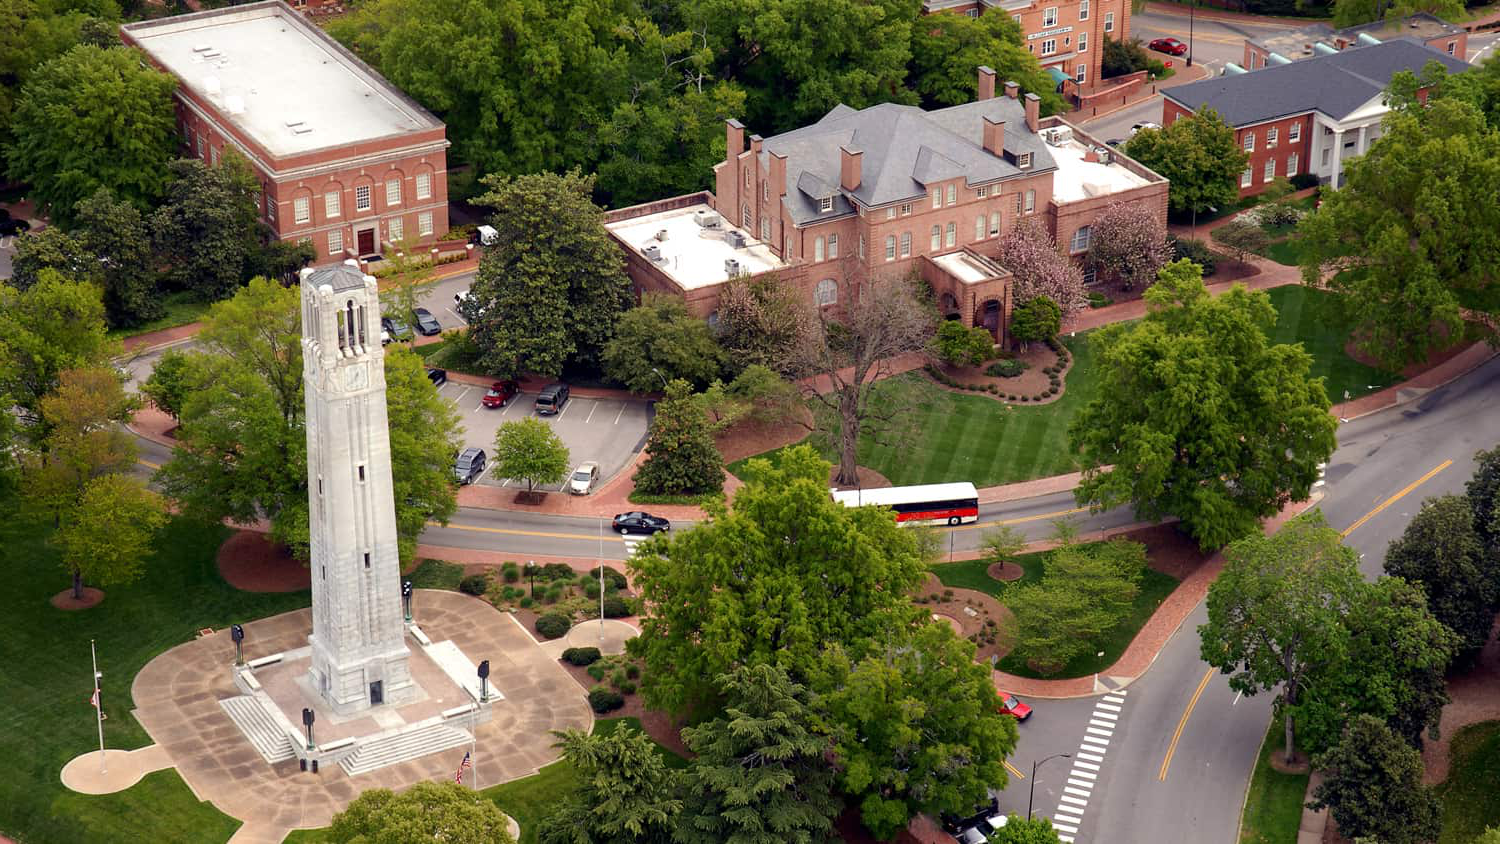 Aerial of Holladay Hall and the NC 州 belltower